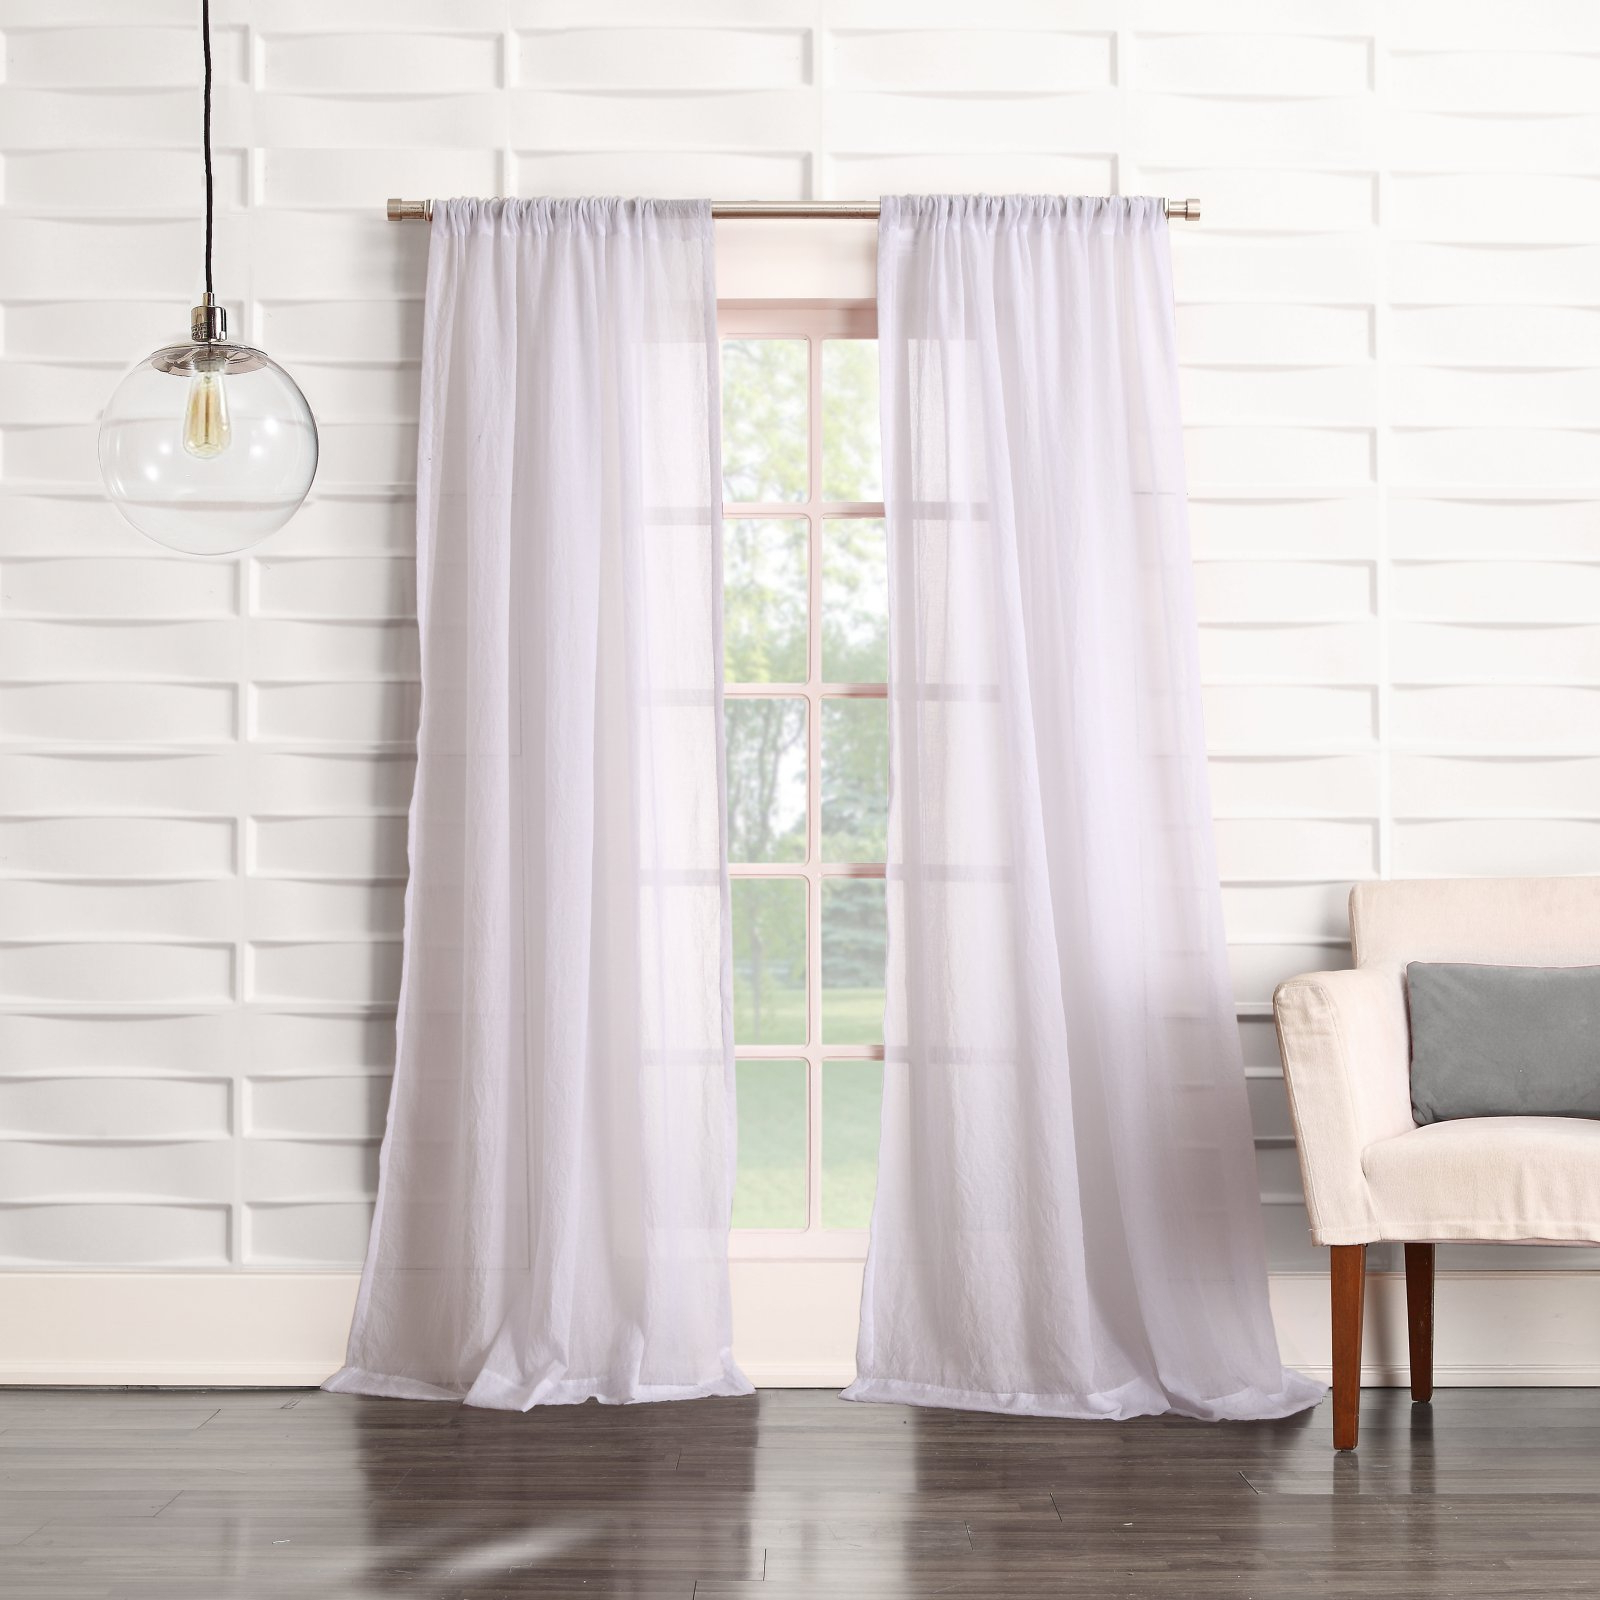 Ladonna Rod Pocket Solid Semi Sheer Window Curtain Panels Regarding 2020 No. 918 Ladonna Rod Pocket Curtain Panel White In 2019 (Gallery 11 of 20)